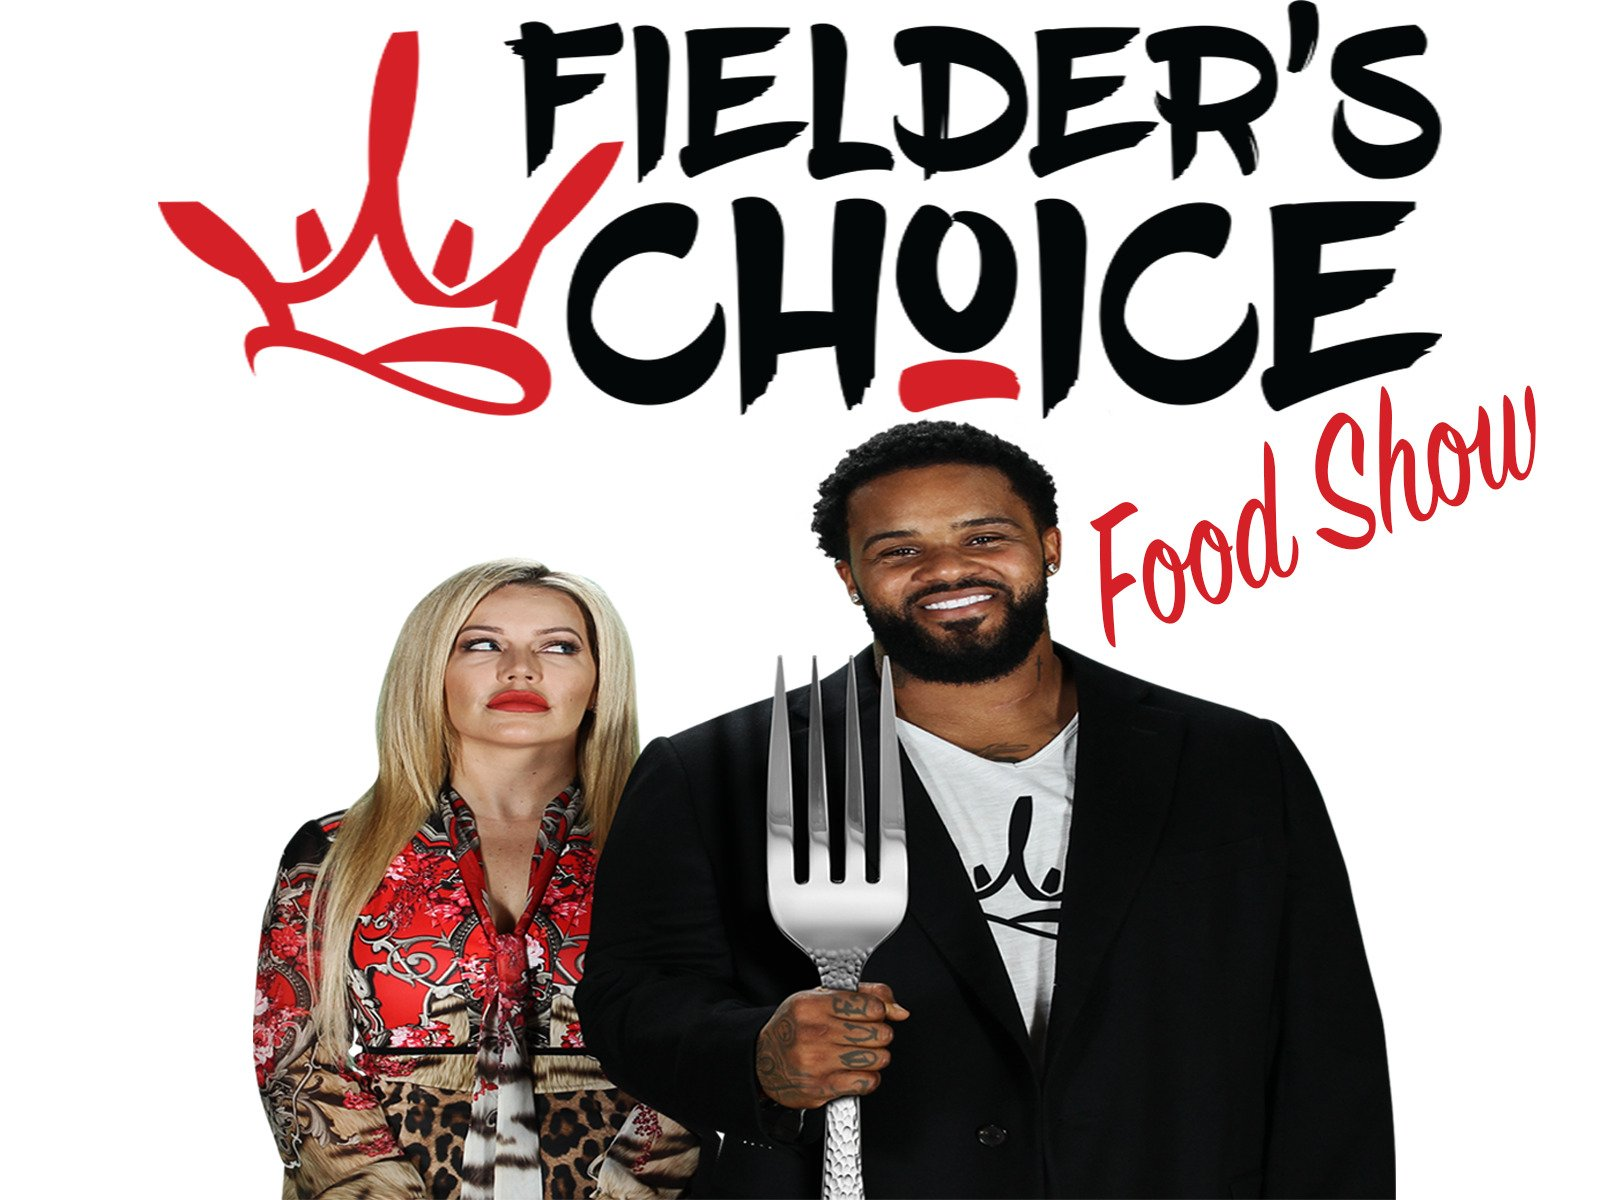 Fielder's Choice Food Show - Season 1